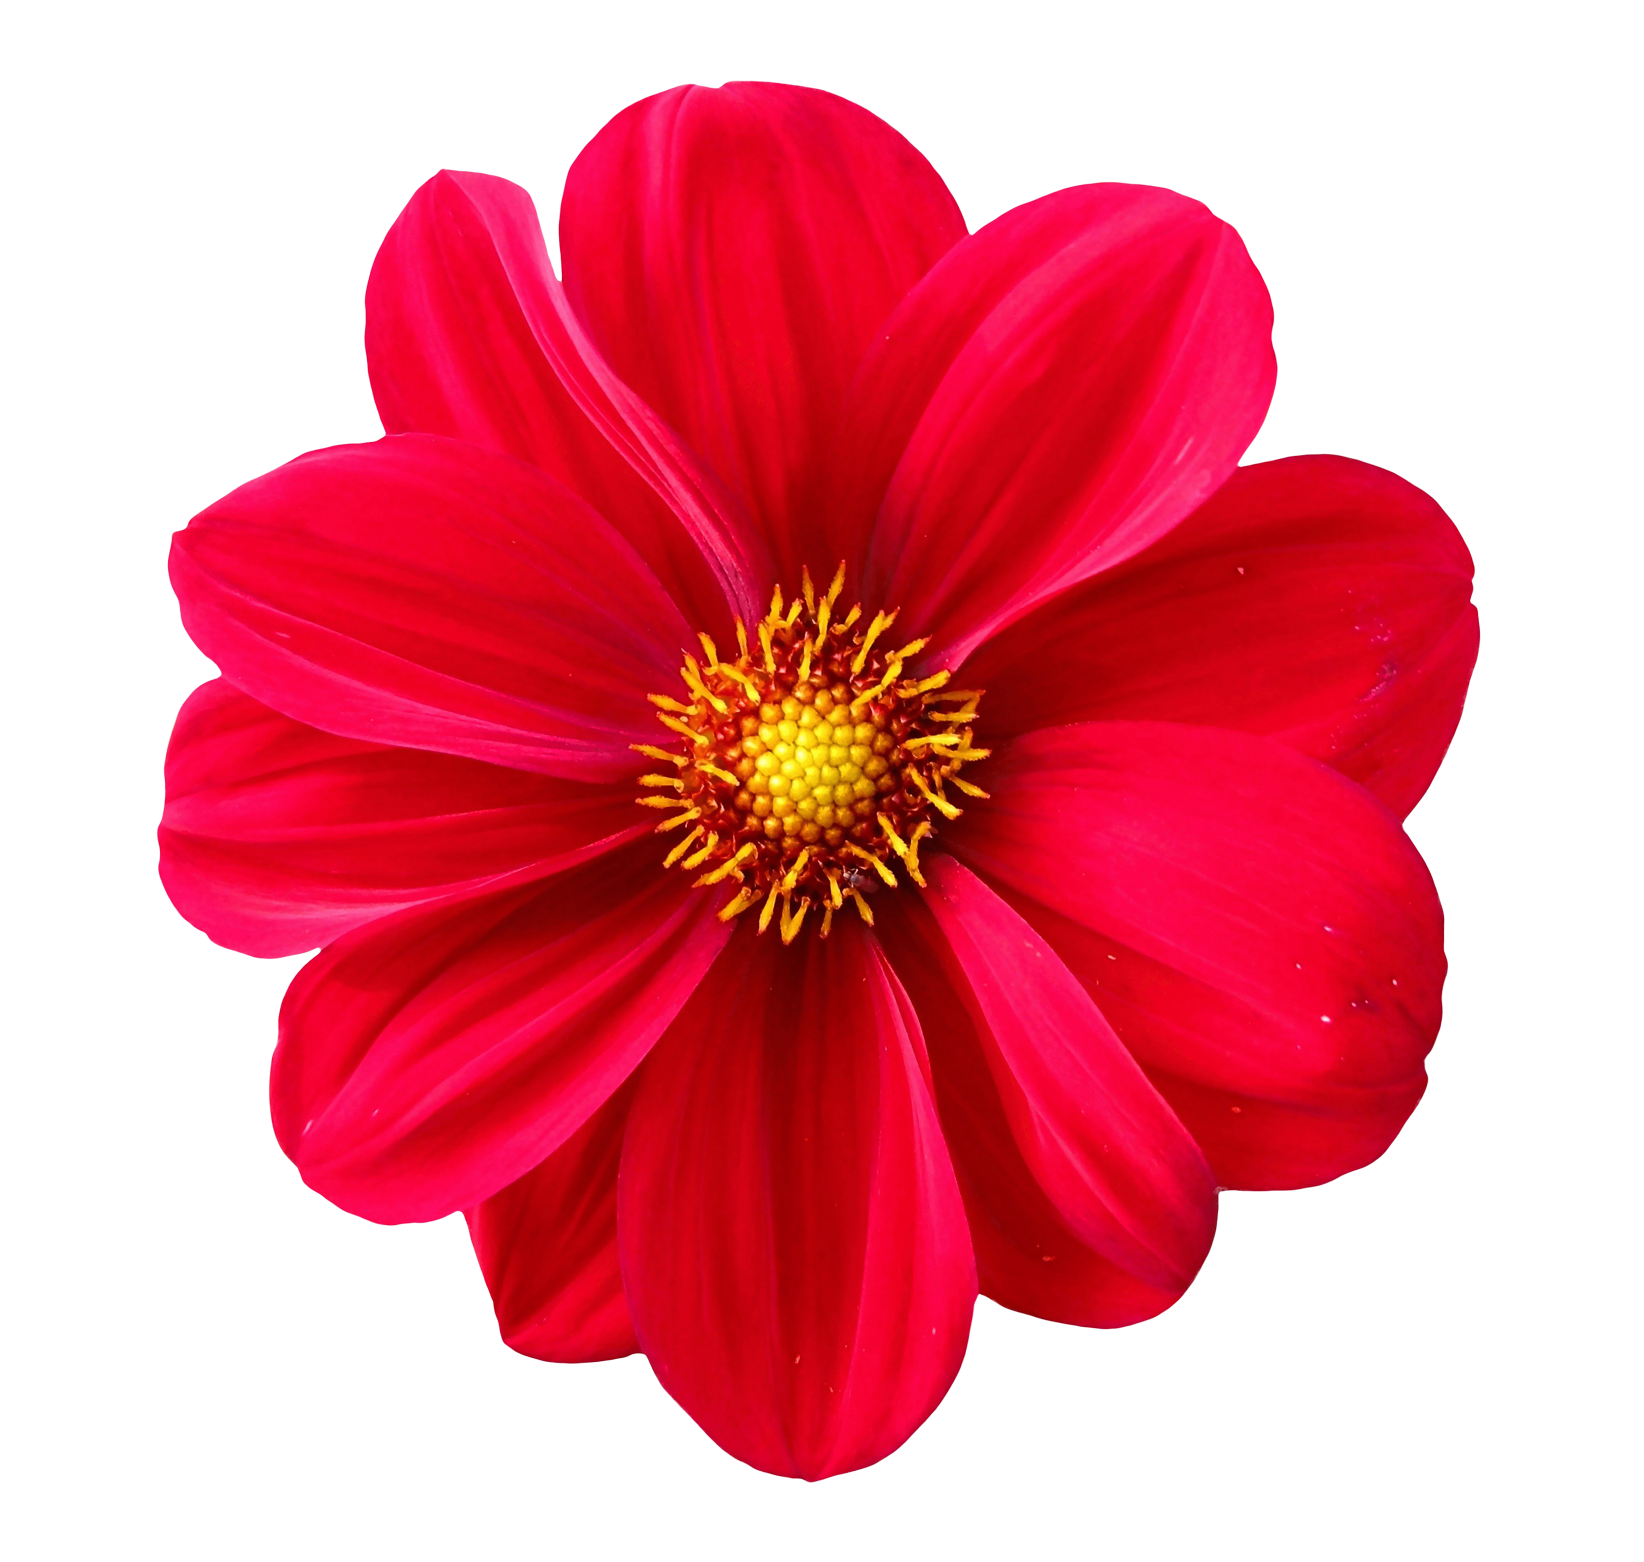 pinterest. Poppy clipart daisy